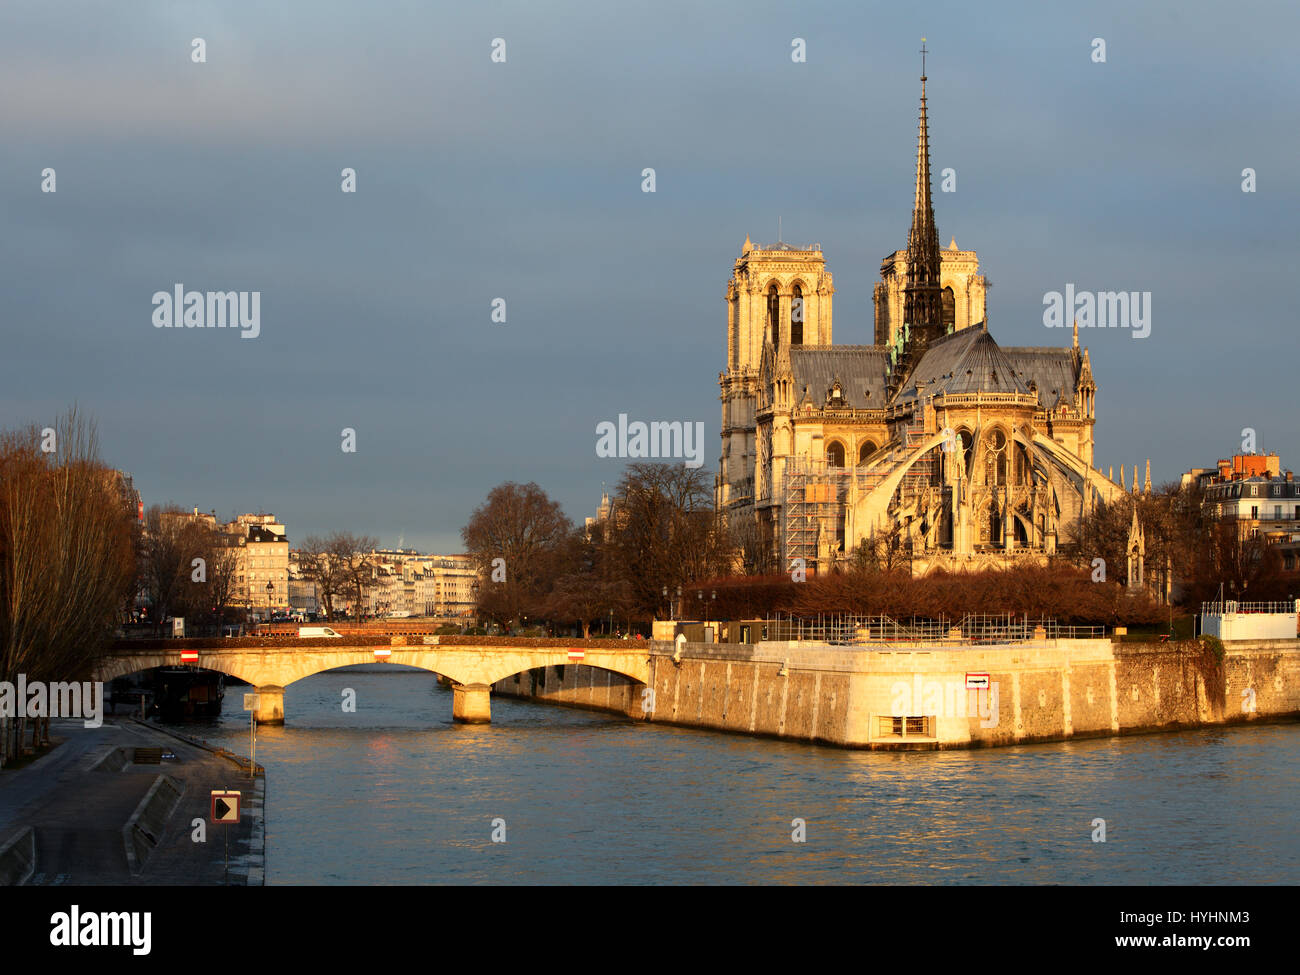 Notre Dame de Paris, France Photo Stock